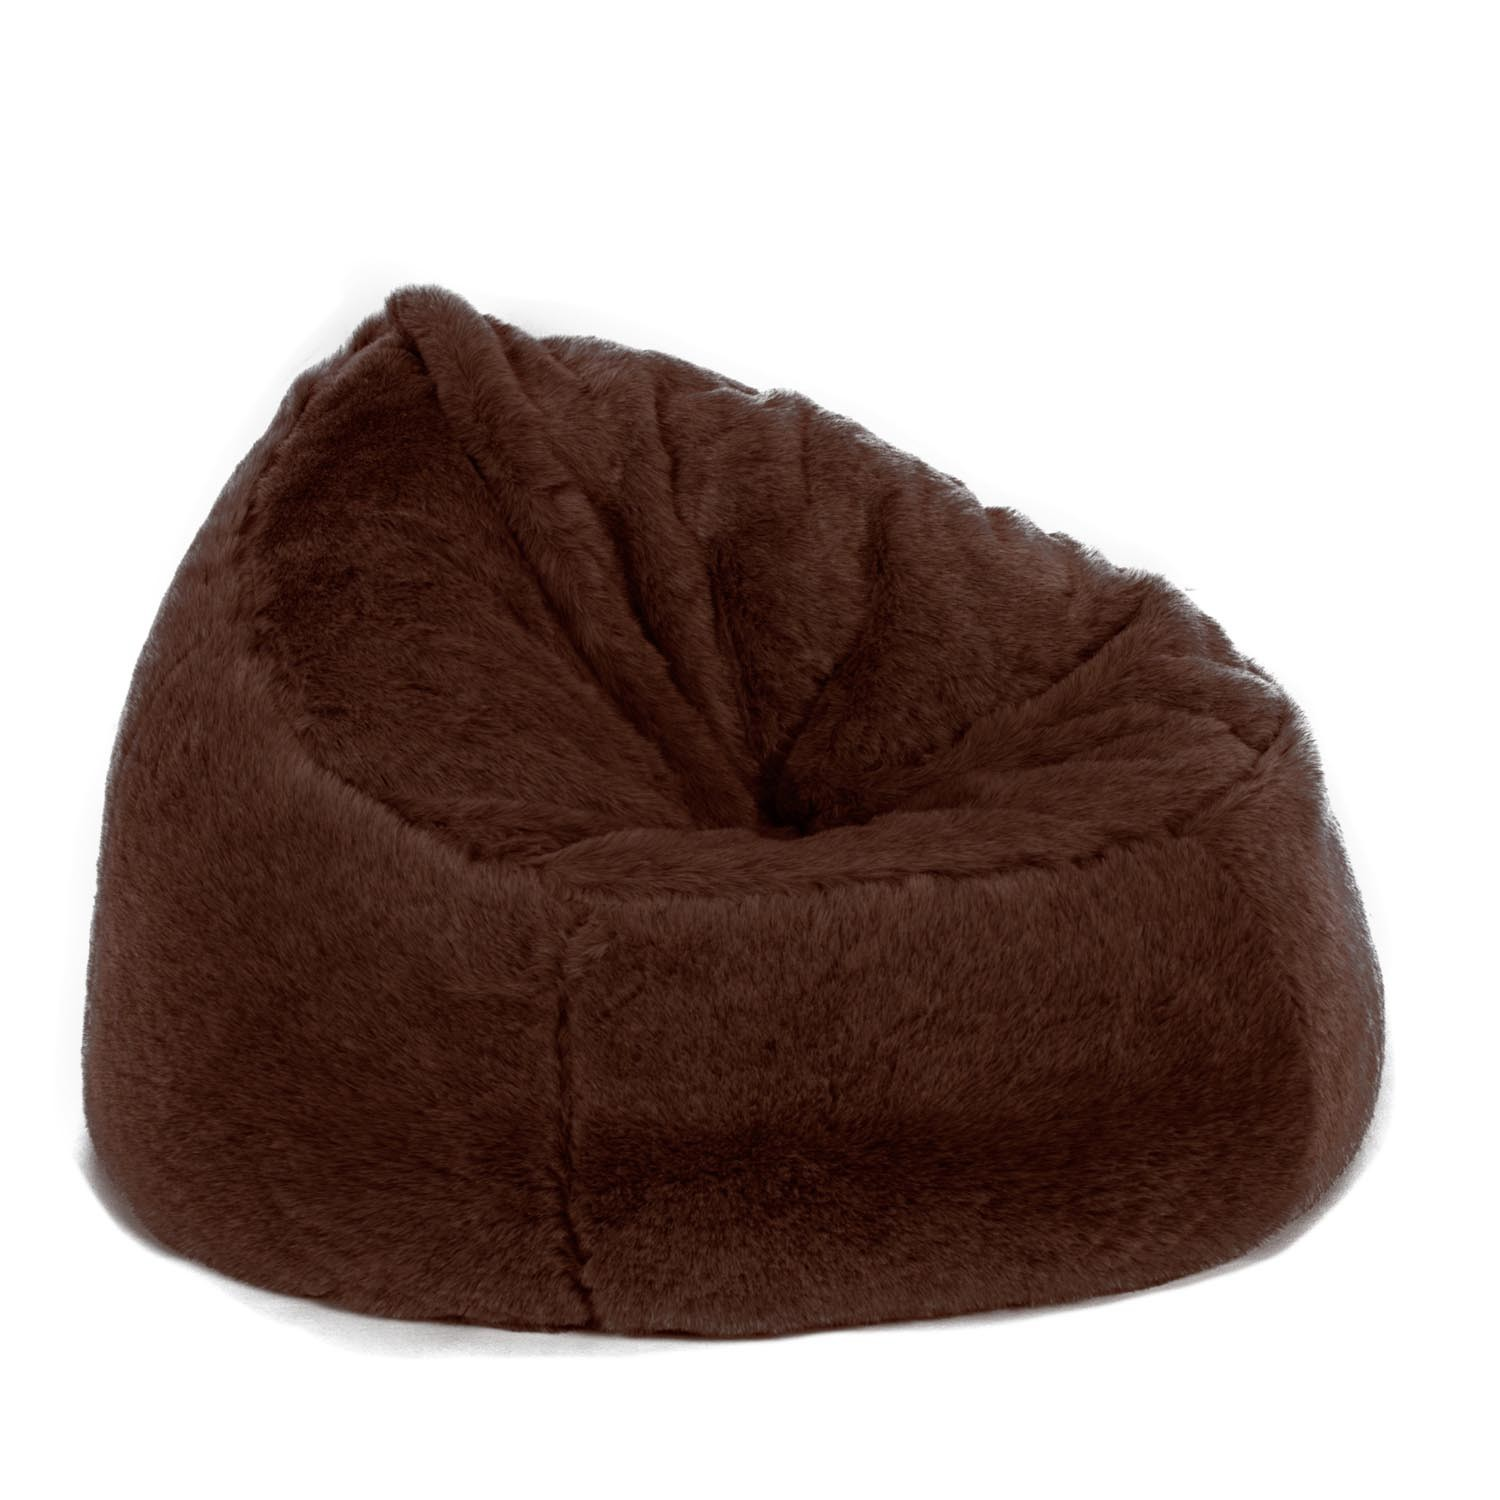 Amazing Faux Fur Bean Bag Chair Top Blog For Chair Review Pdpeps Interior Chair Design Pdpepsorg